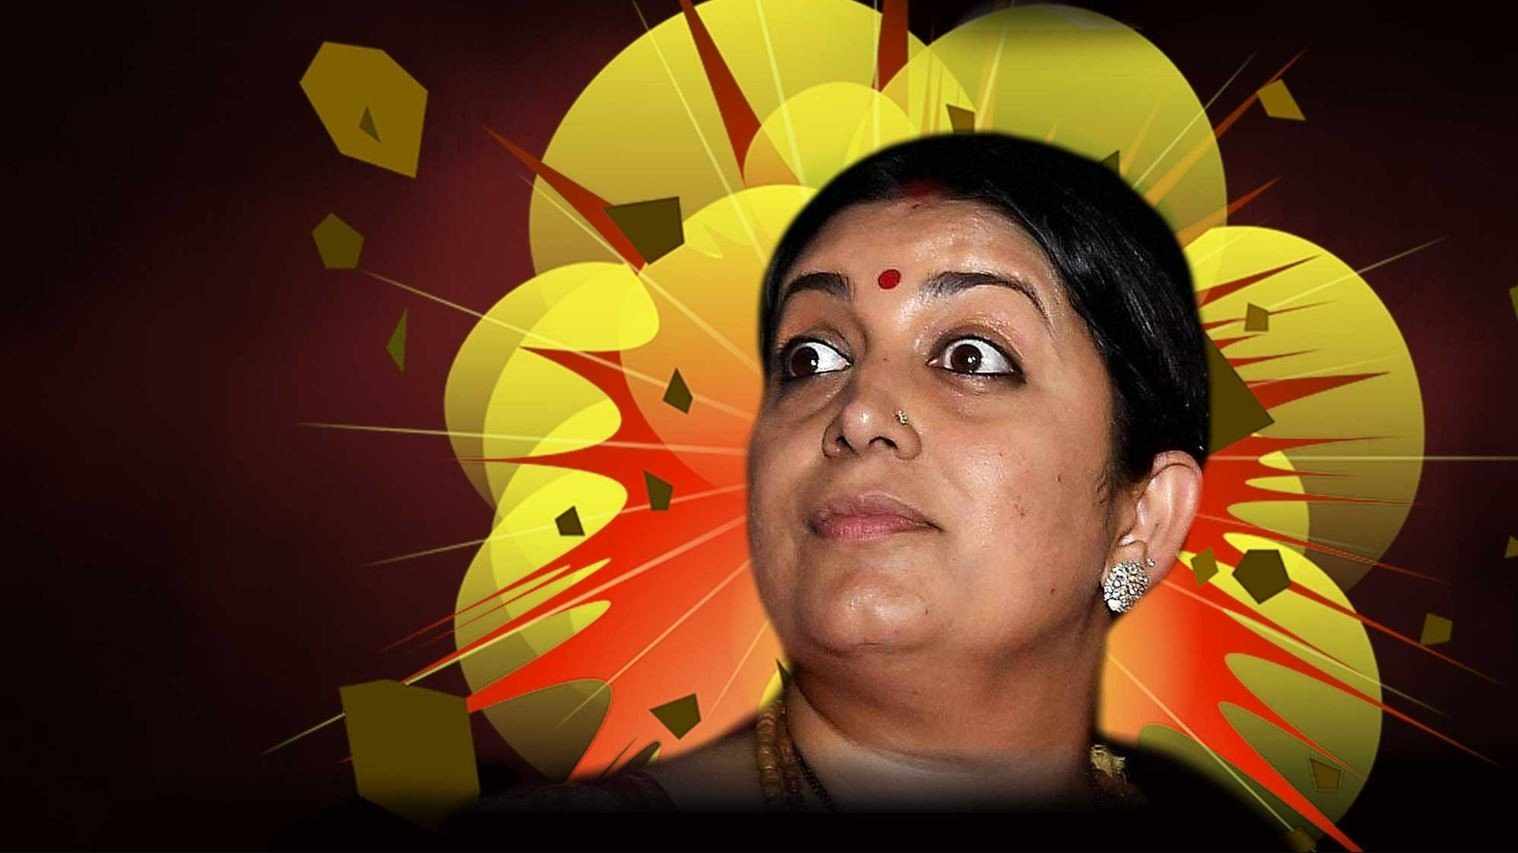 All became Smrti irani nude photo think, what